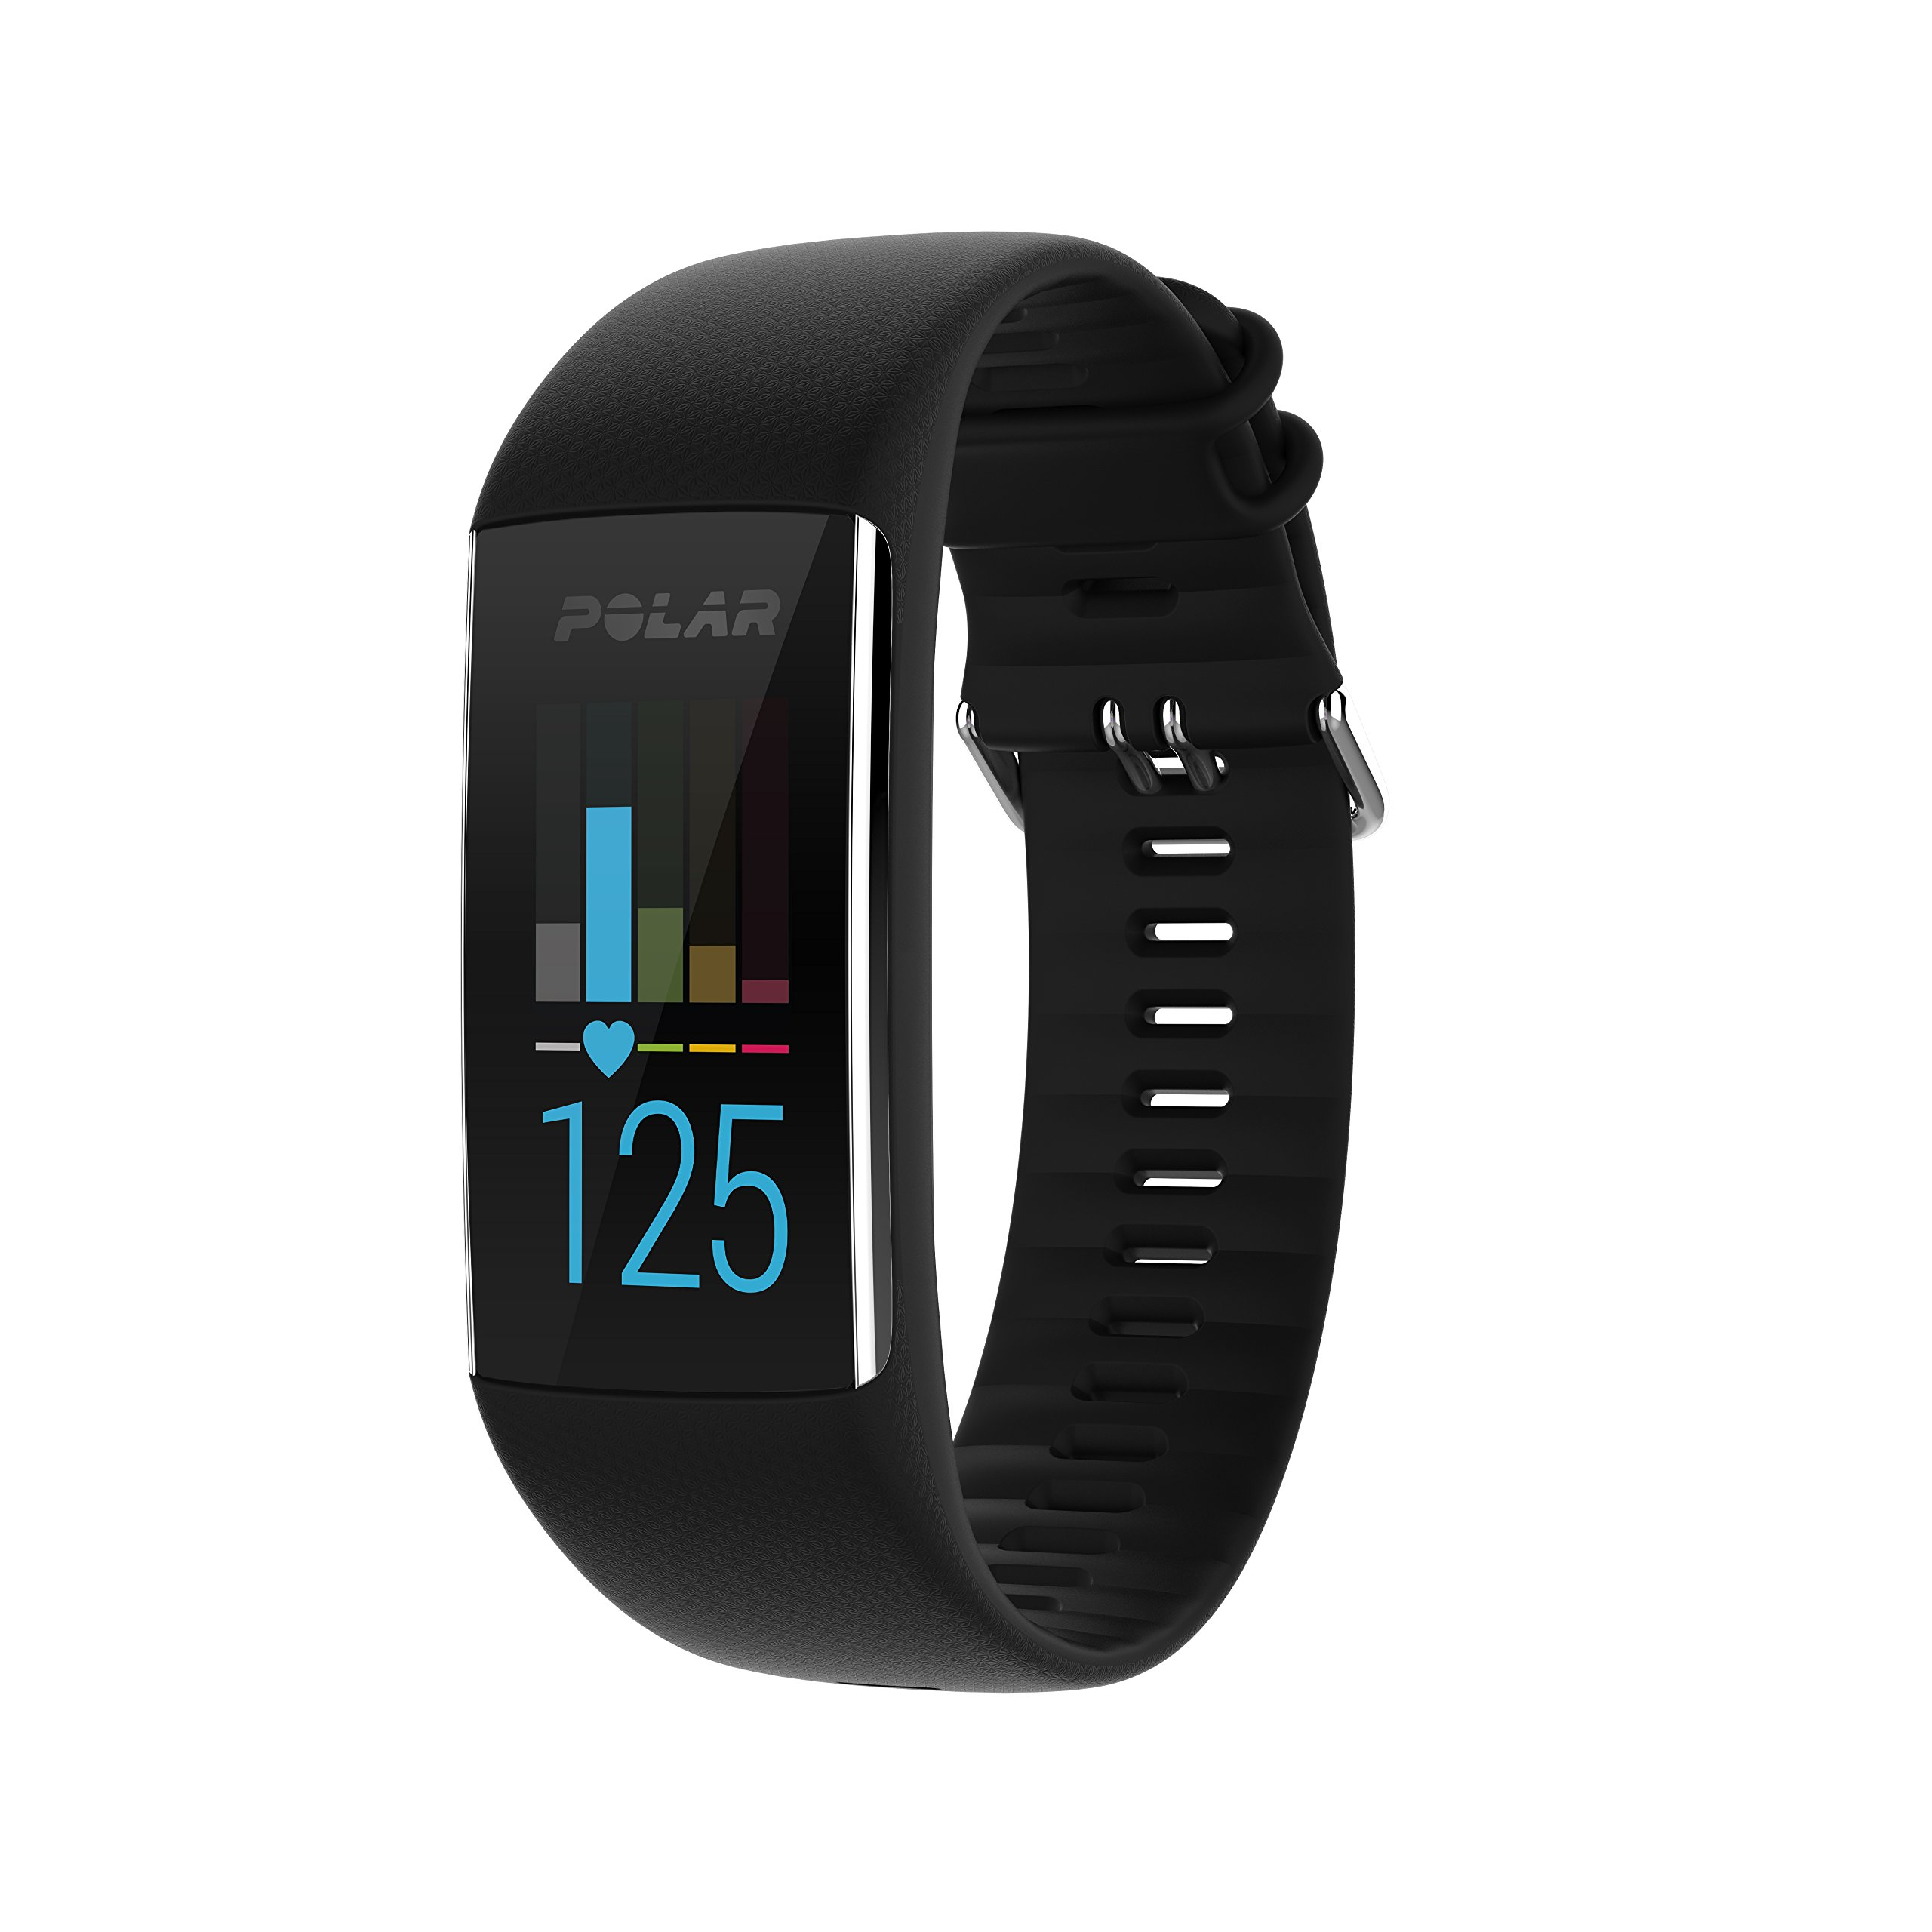 Polar A370 (Black, Medium/Large) GPS Fitness Band BUNDLE with Extra Silicone Band (White) & PlayBetter Portable Power Bank (2200mAh) | On-Wrist Heart Rate, 24/7 Activity Tracker by PlayBetter (Image #2)